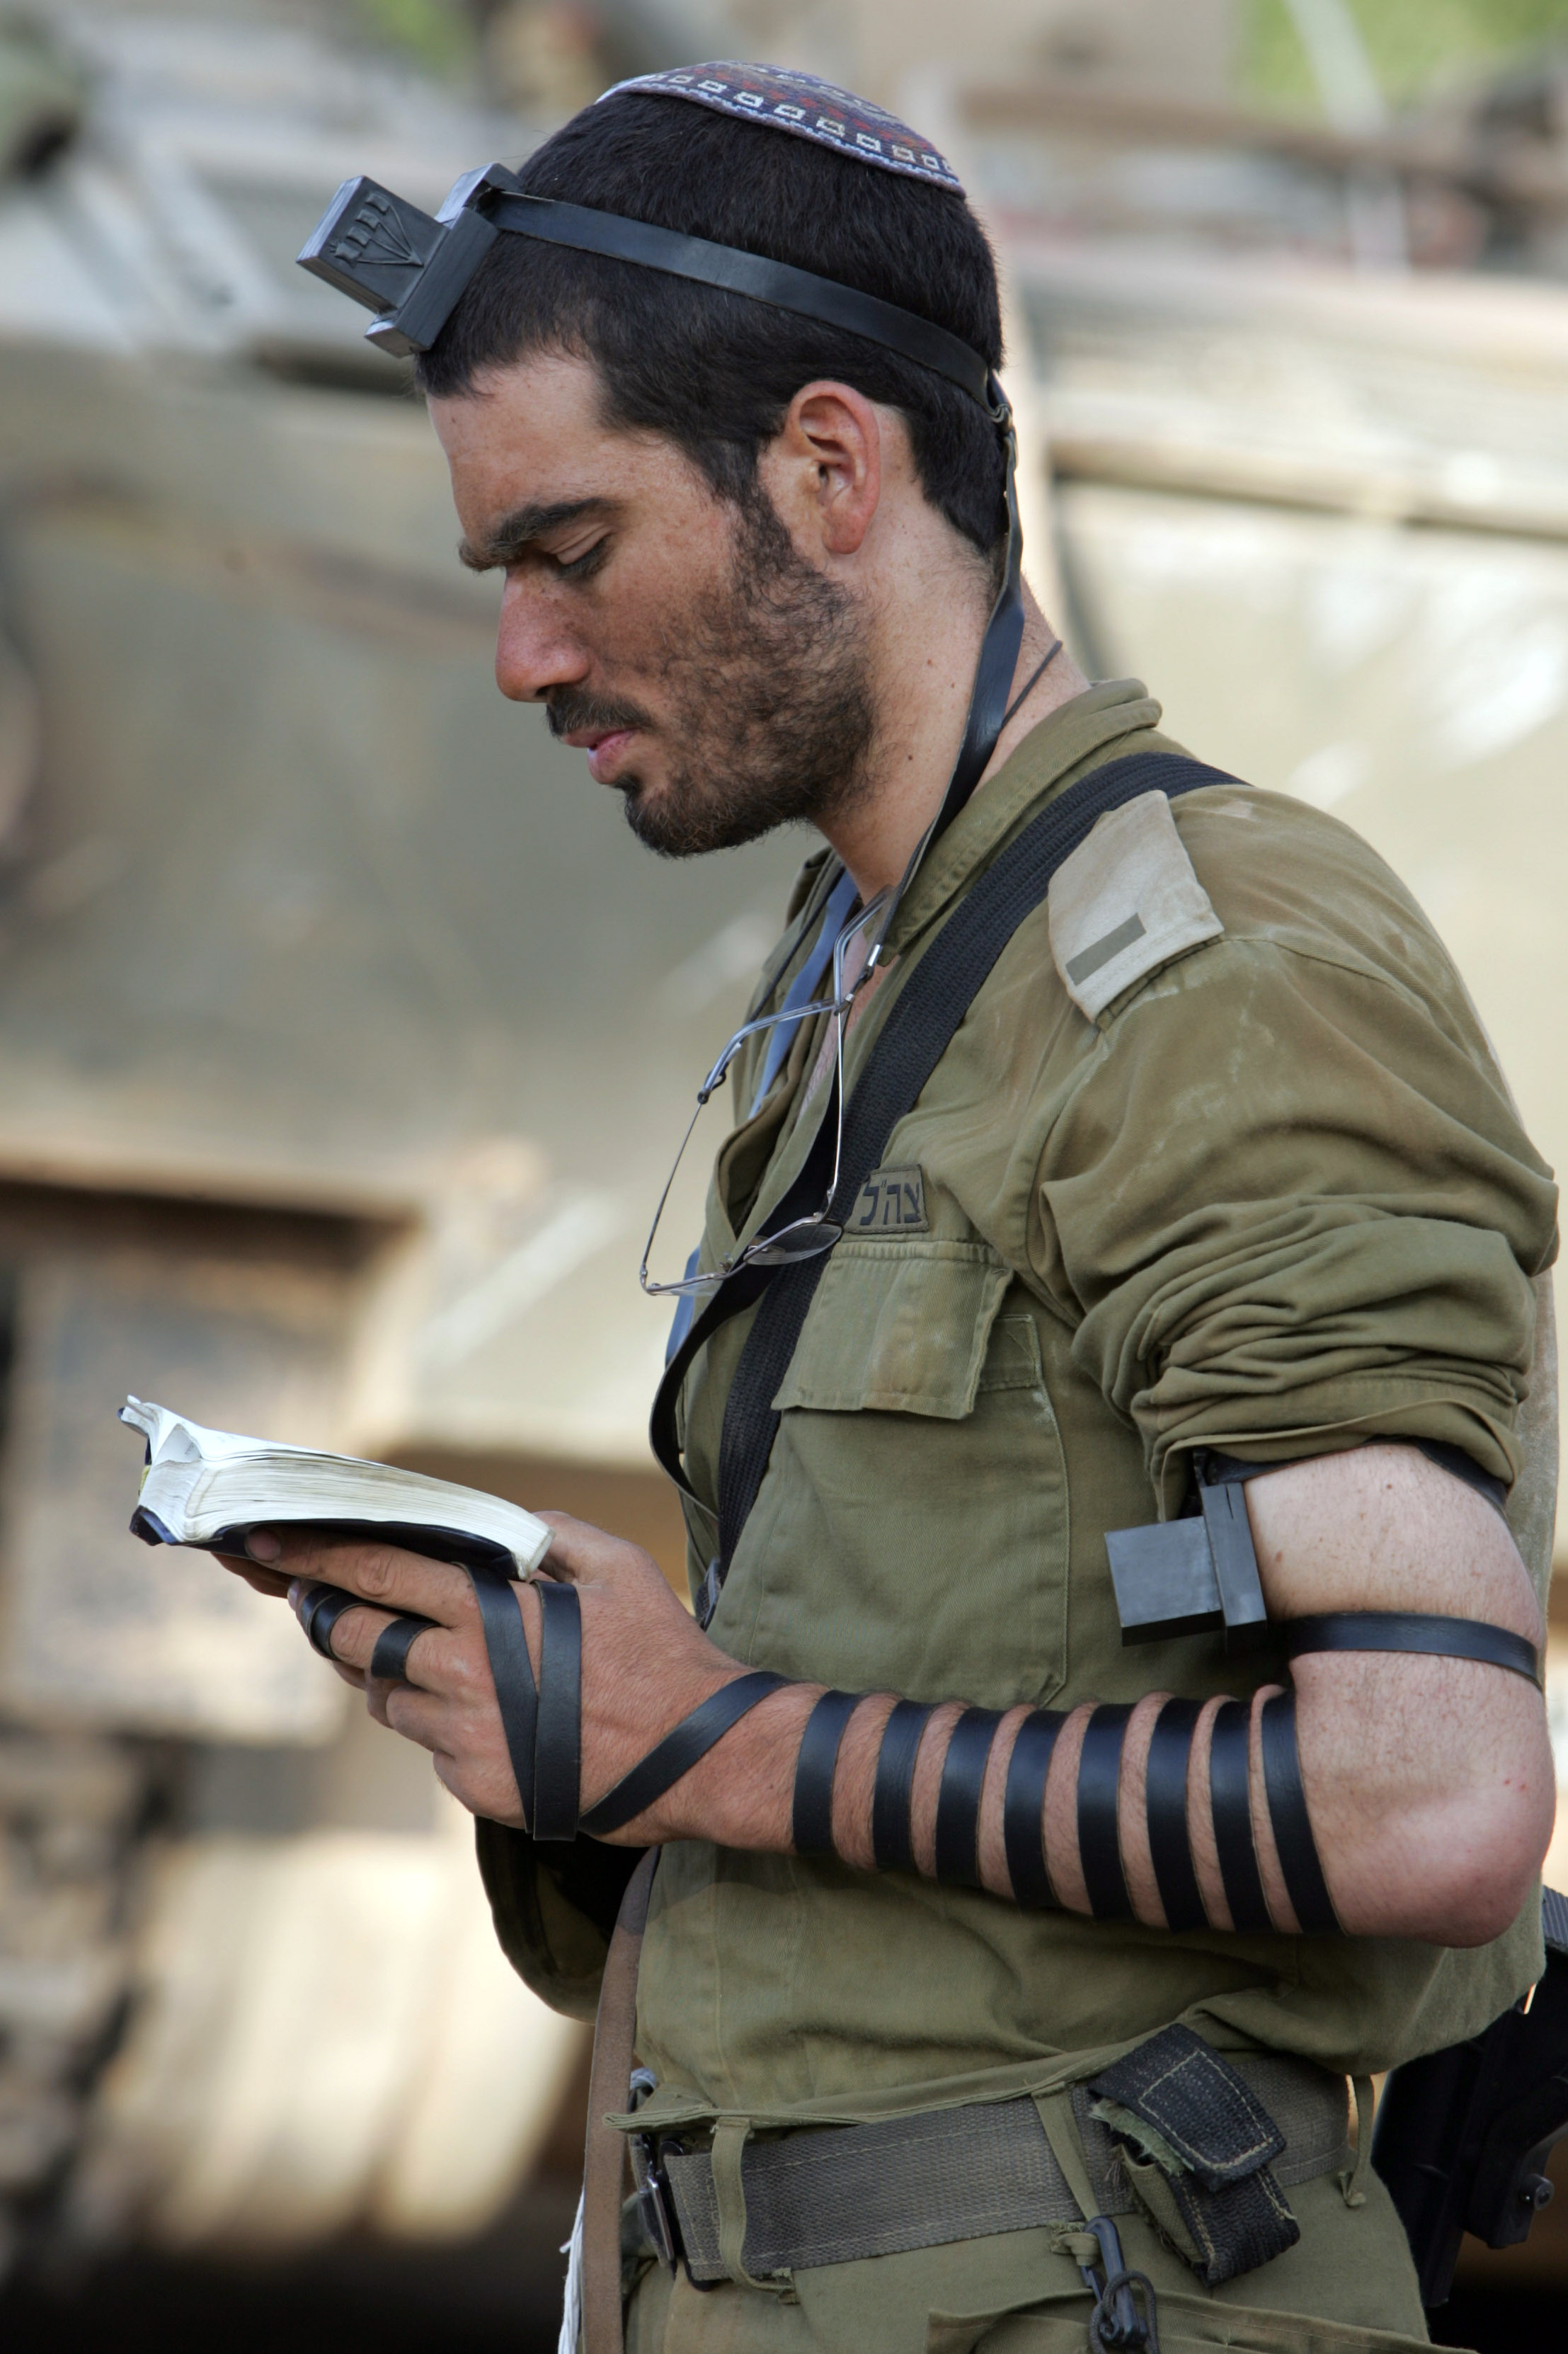 http://upload.wikimedia.org/wikipedia/commons/1/19/IDF_soldier_put_on_tefillin.jpg